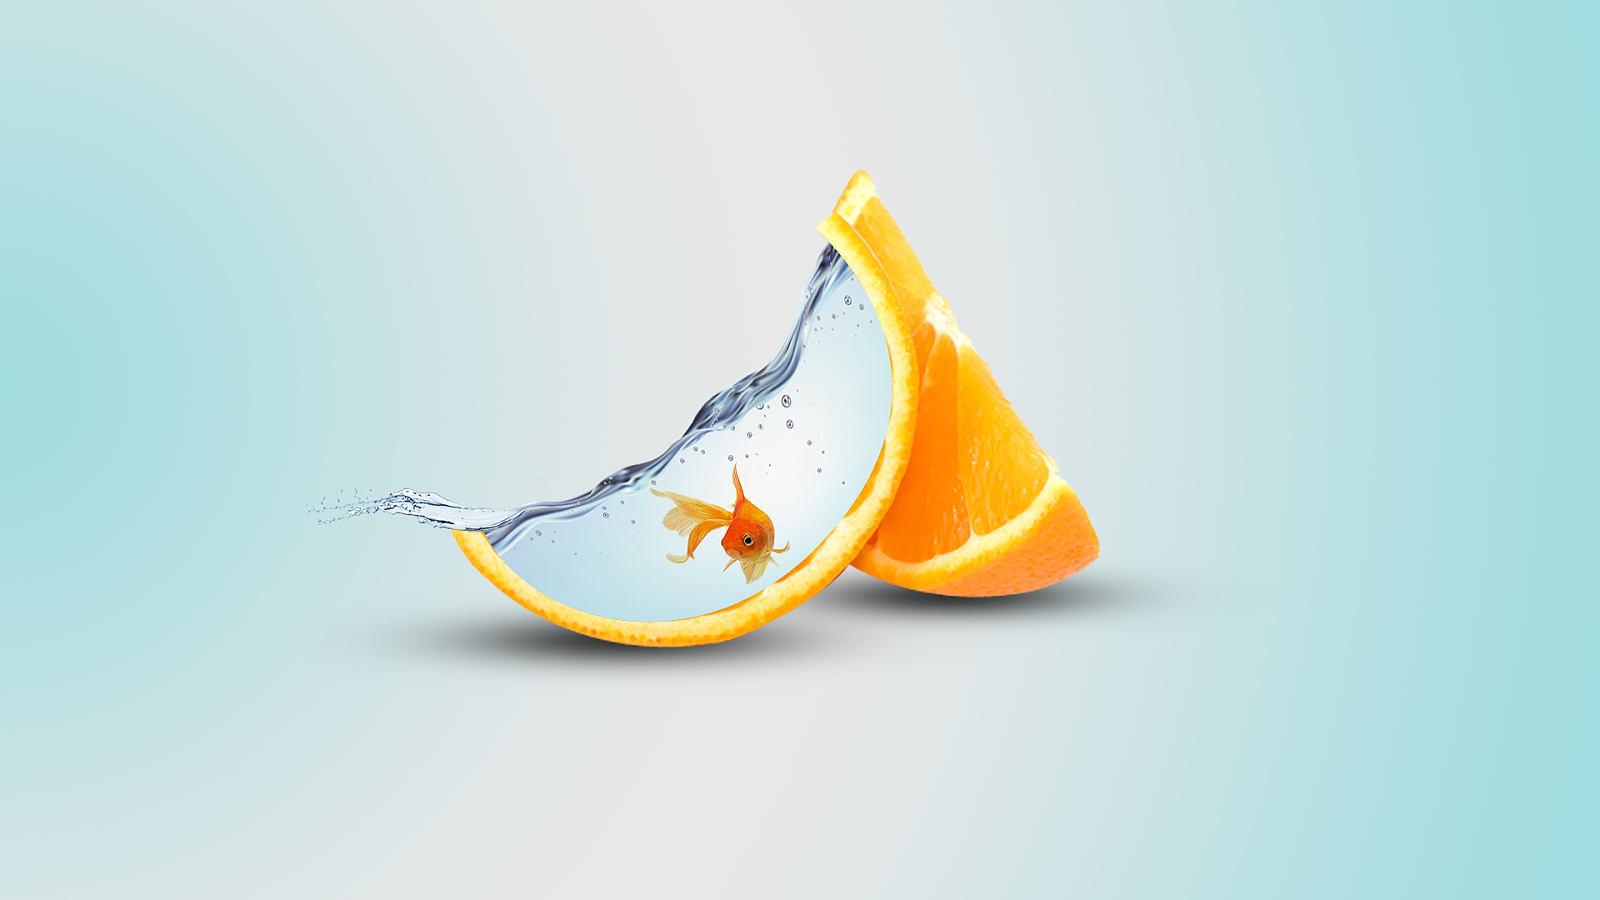 Orange Digital Art 1920 x 1080